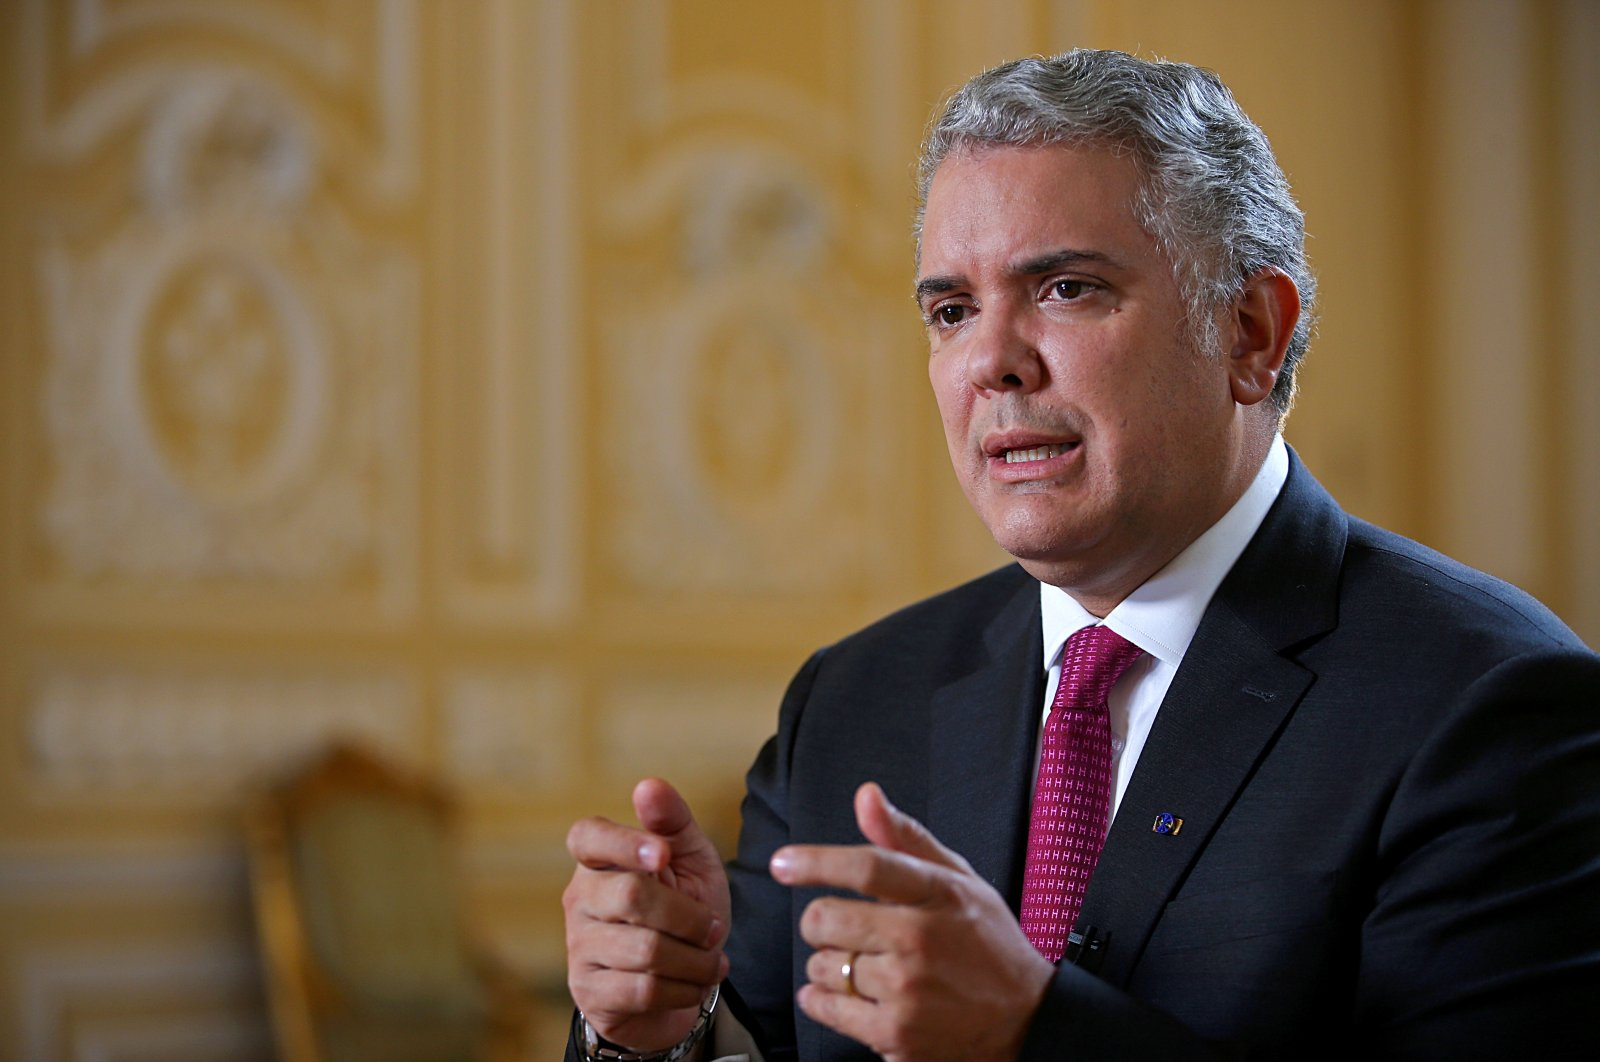 Colombia's President Ivan Duque speaks during an interview with Reuters in Bogota, Colombia, March 12, 2021. (Reuters Photo)